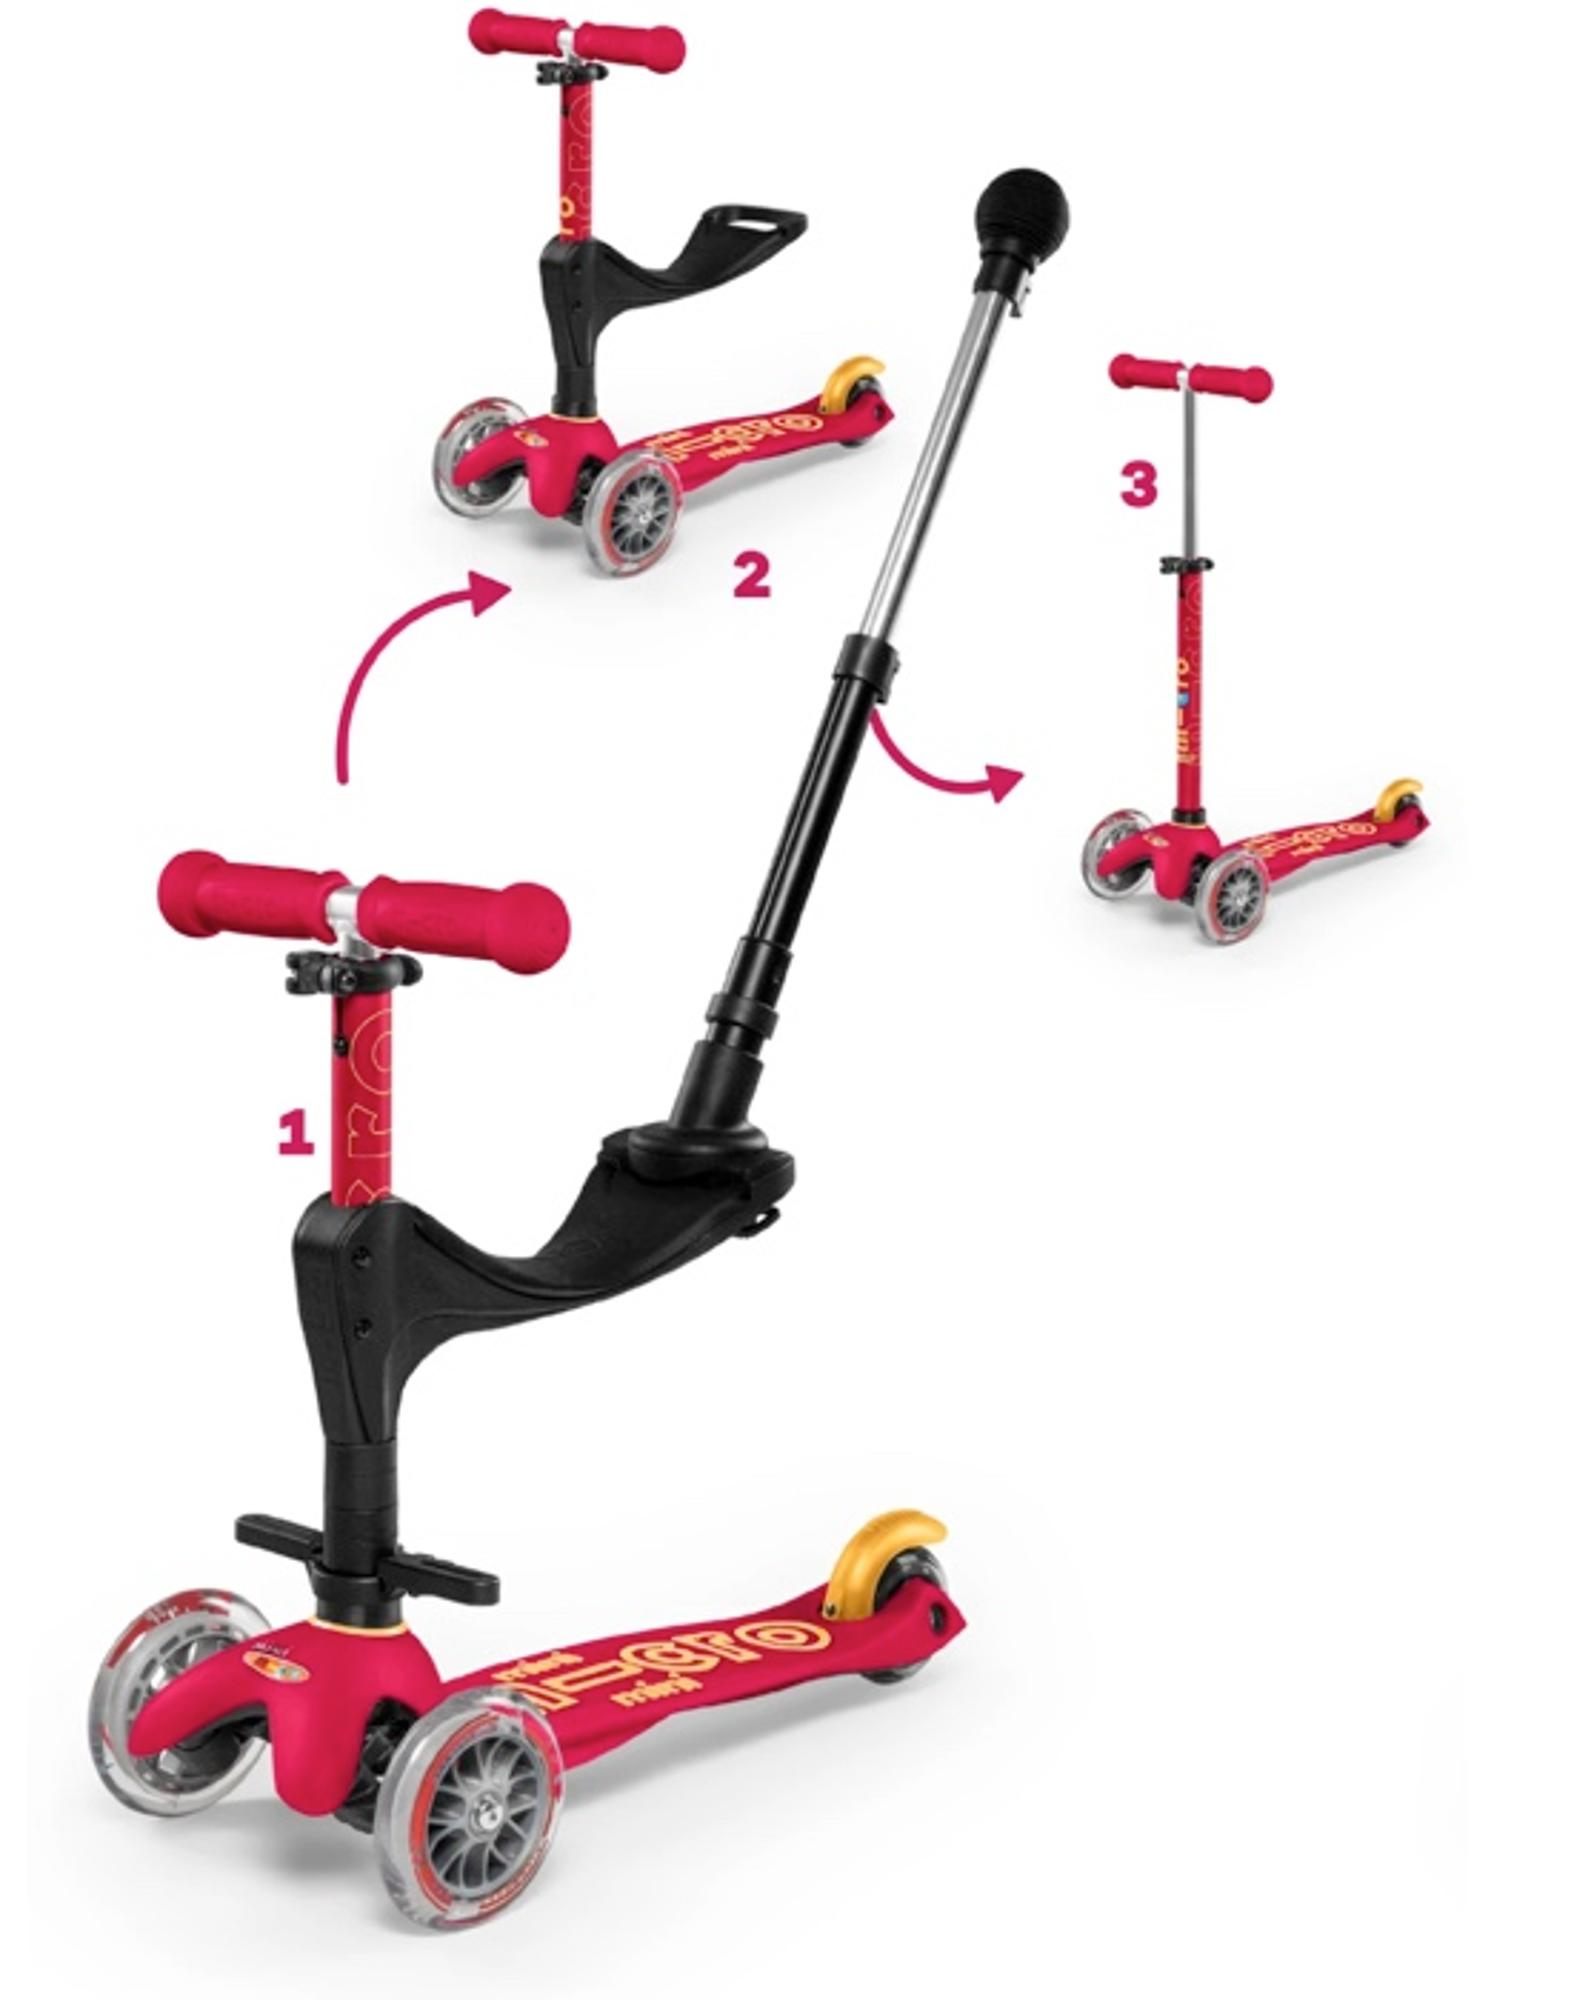 Mini 3 in 1 Deluxe Scooter